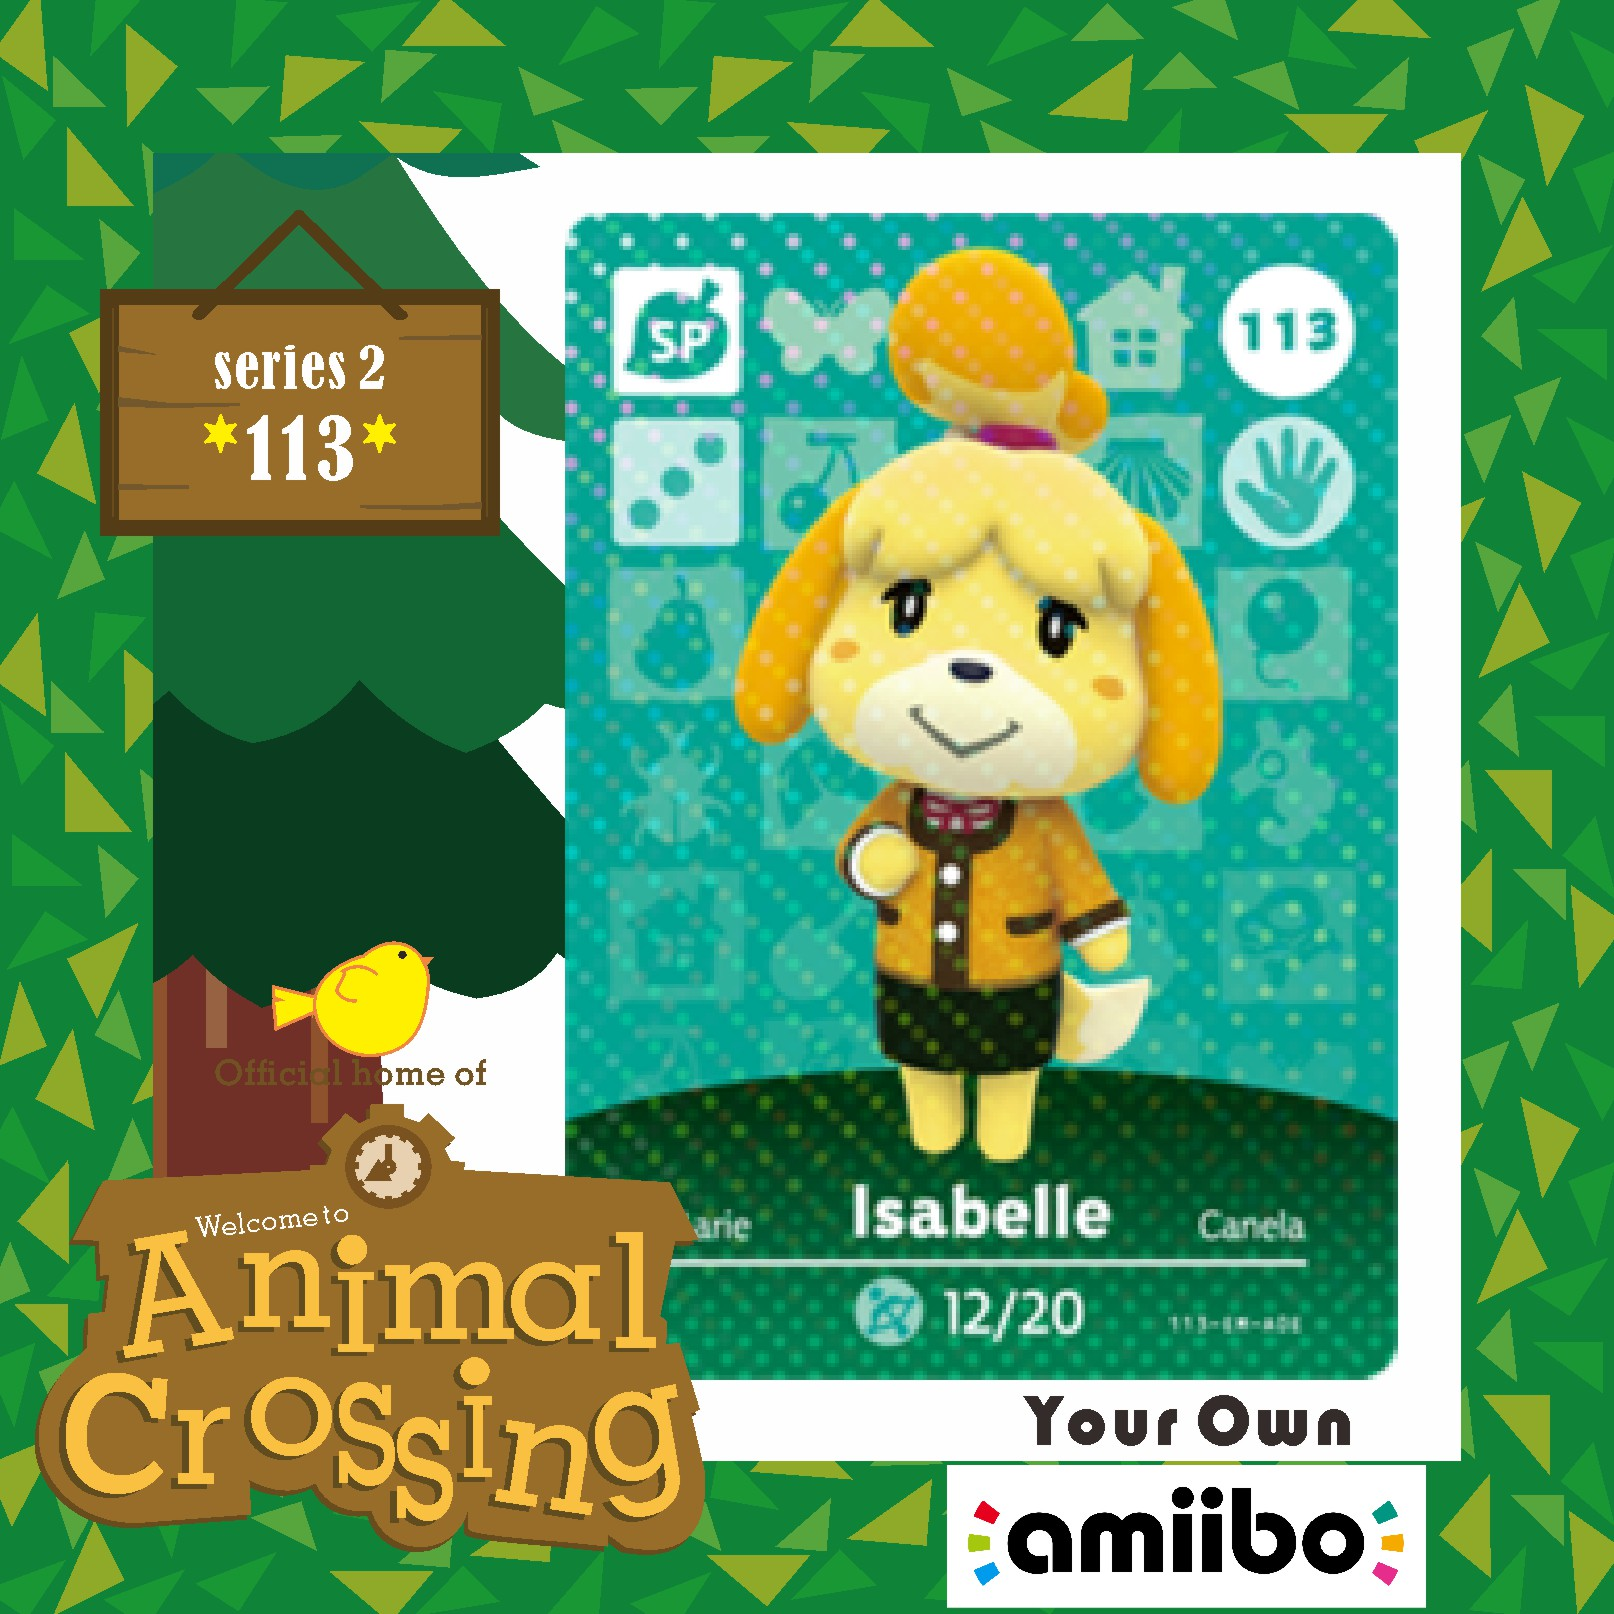 Amiibo Isabelle  Animal Crossing isabel  Welcome Amiibo 001  New Horizons Villager Card Animal Crossing 113 215 301 Series 1 2 3 2